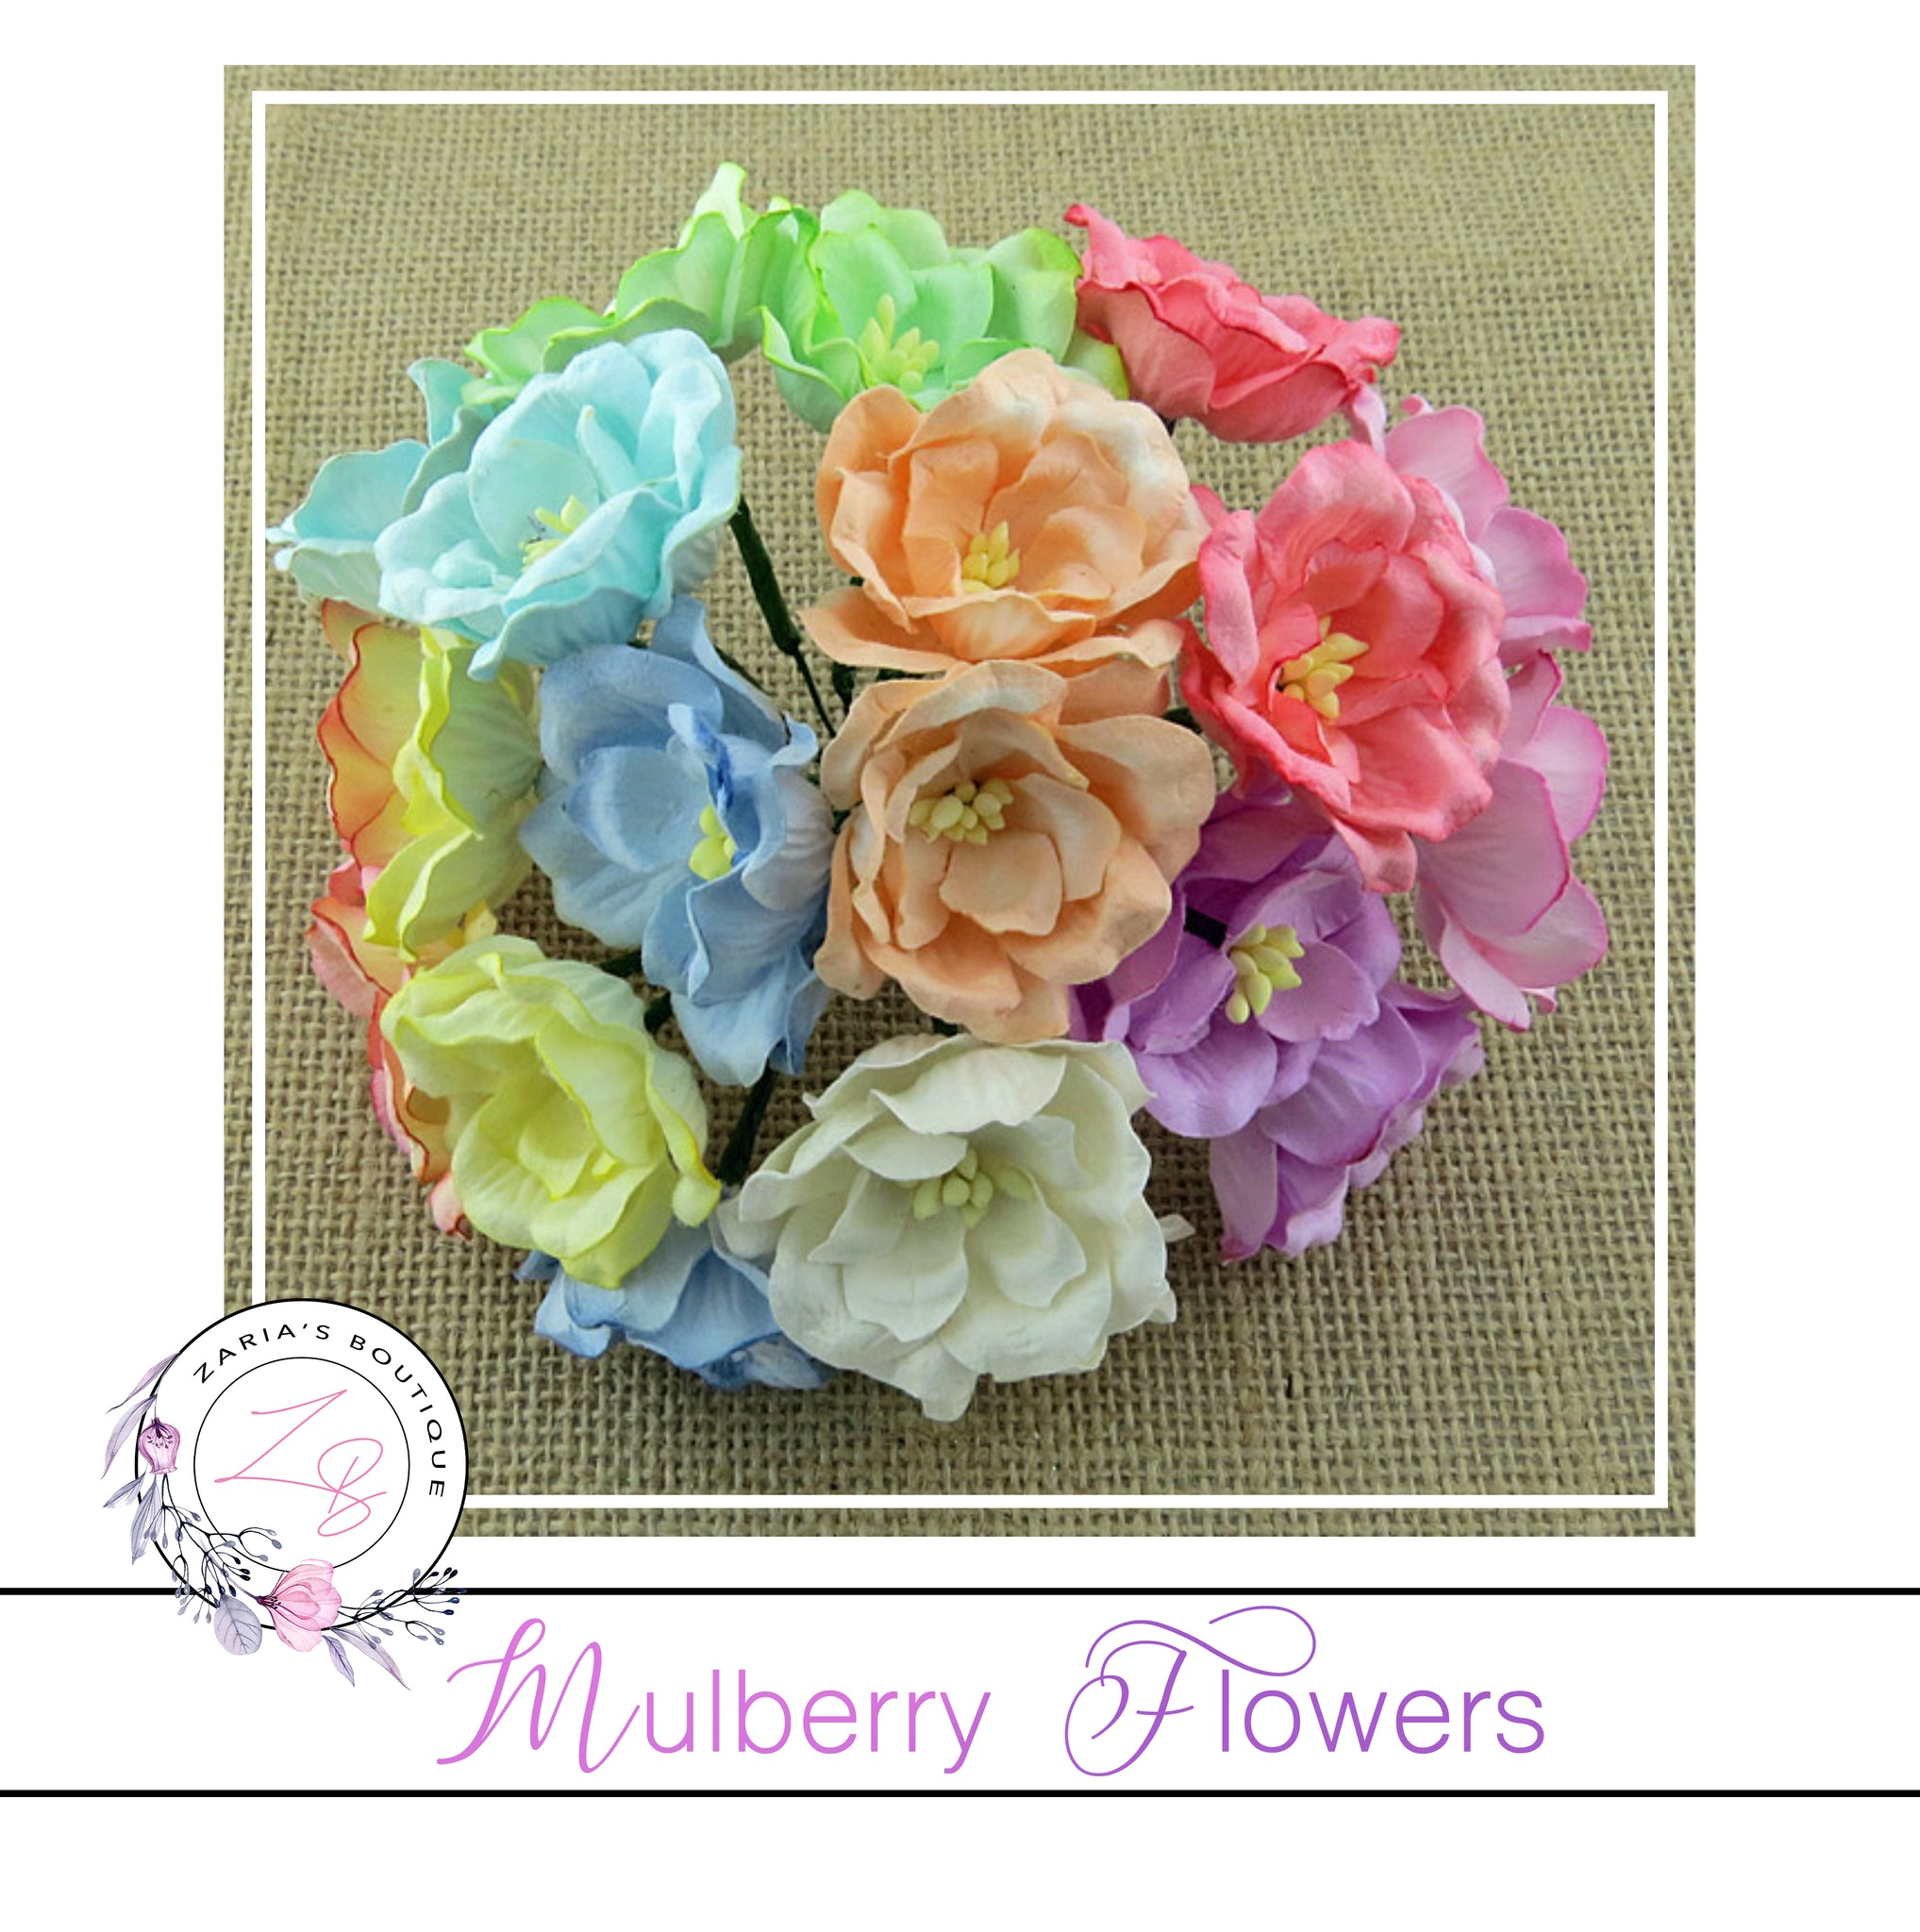 Mulberry Flowers ~ Magnolia ~ Pastel Mix ~ 35mm x 10 pieces